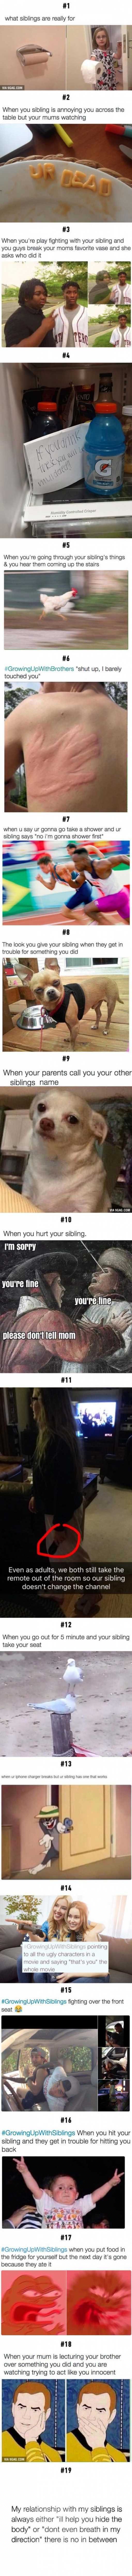 Sibling Memes That Are Too Relatable